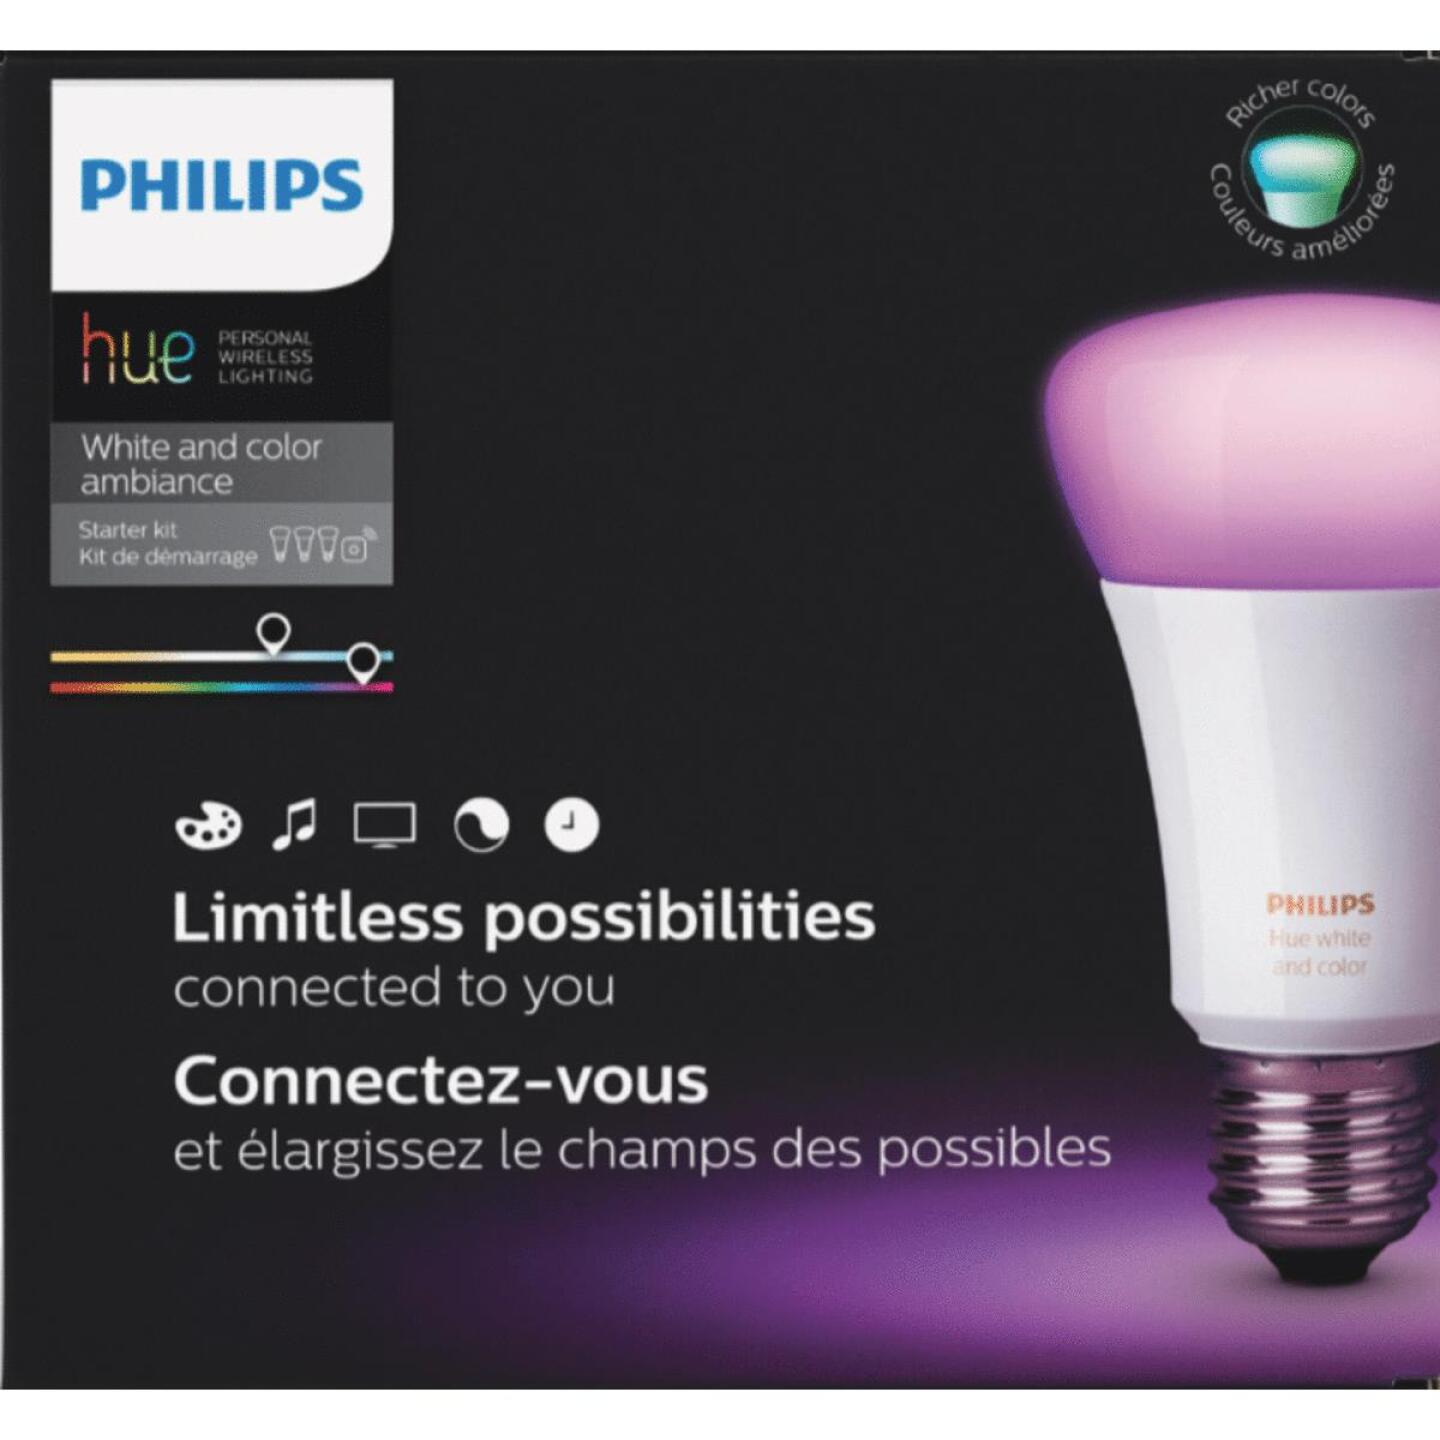 Philips Hue White & Color Ambiance 60W Equivalent Medium A19 Dimmable LED Light Bulb Starter Kit Image 2